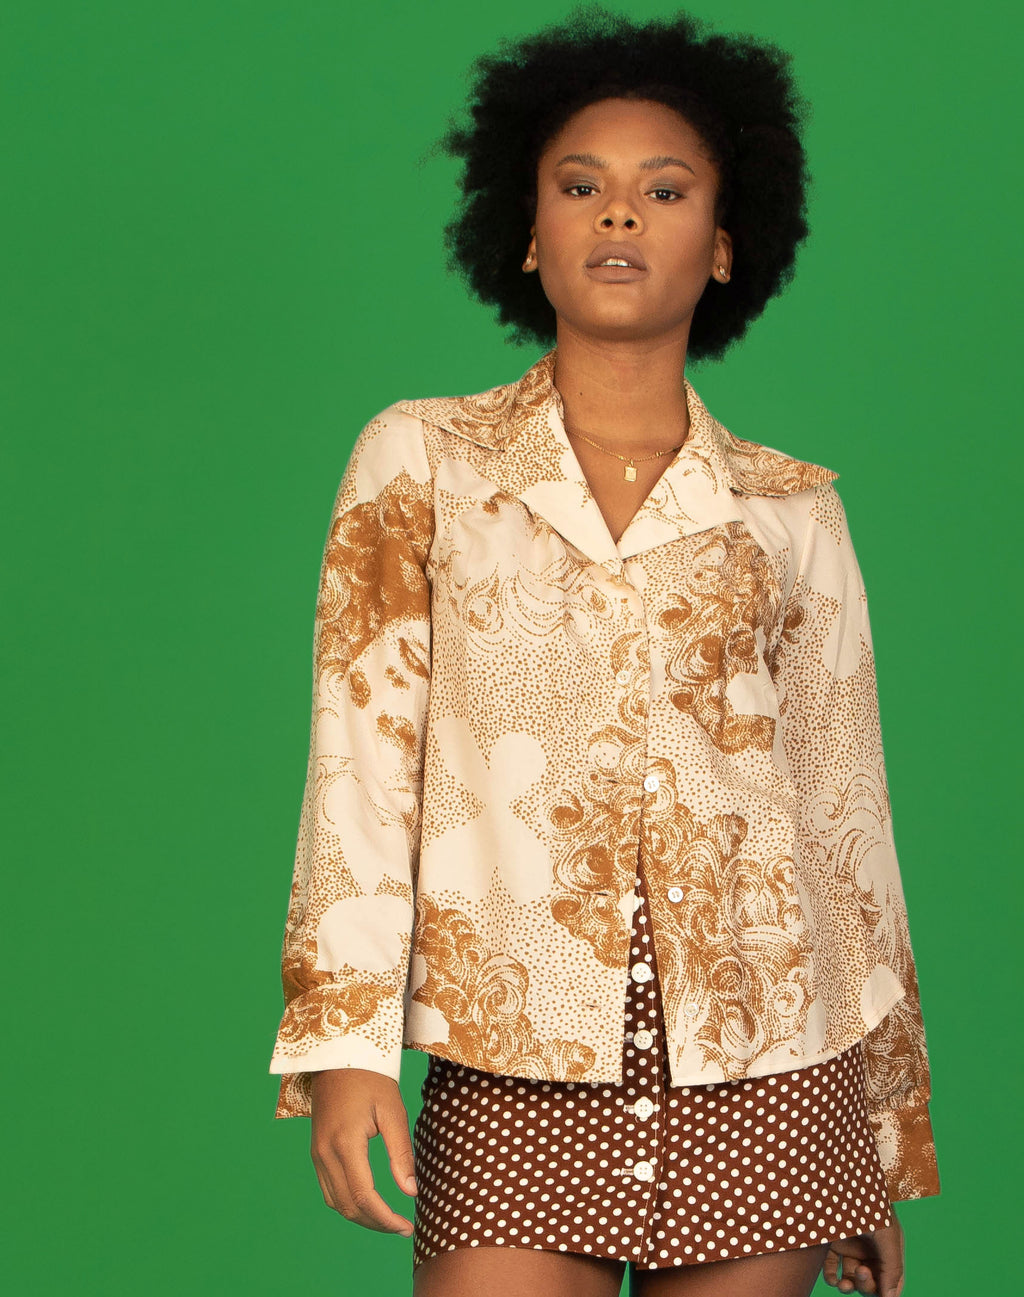 BROWN MOSAIC PORTRAIT SHIRT